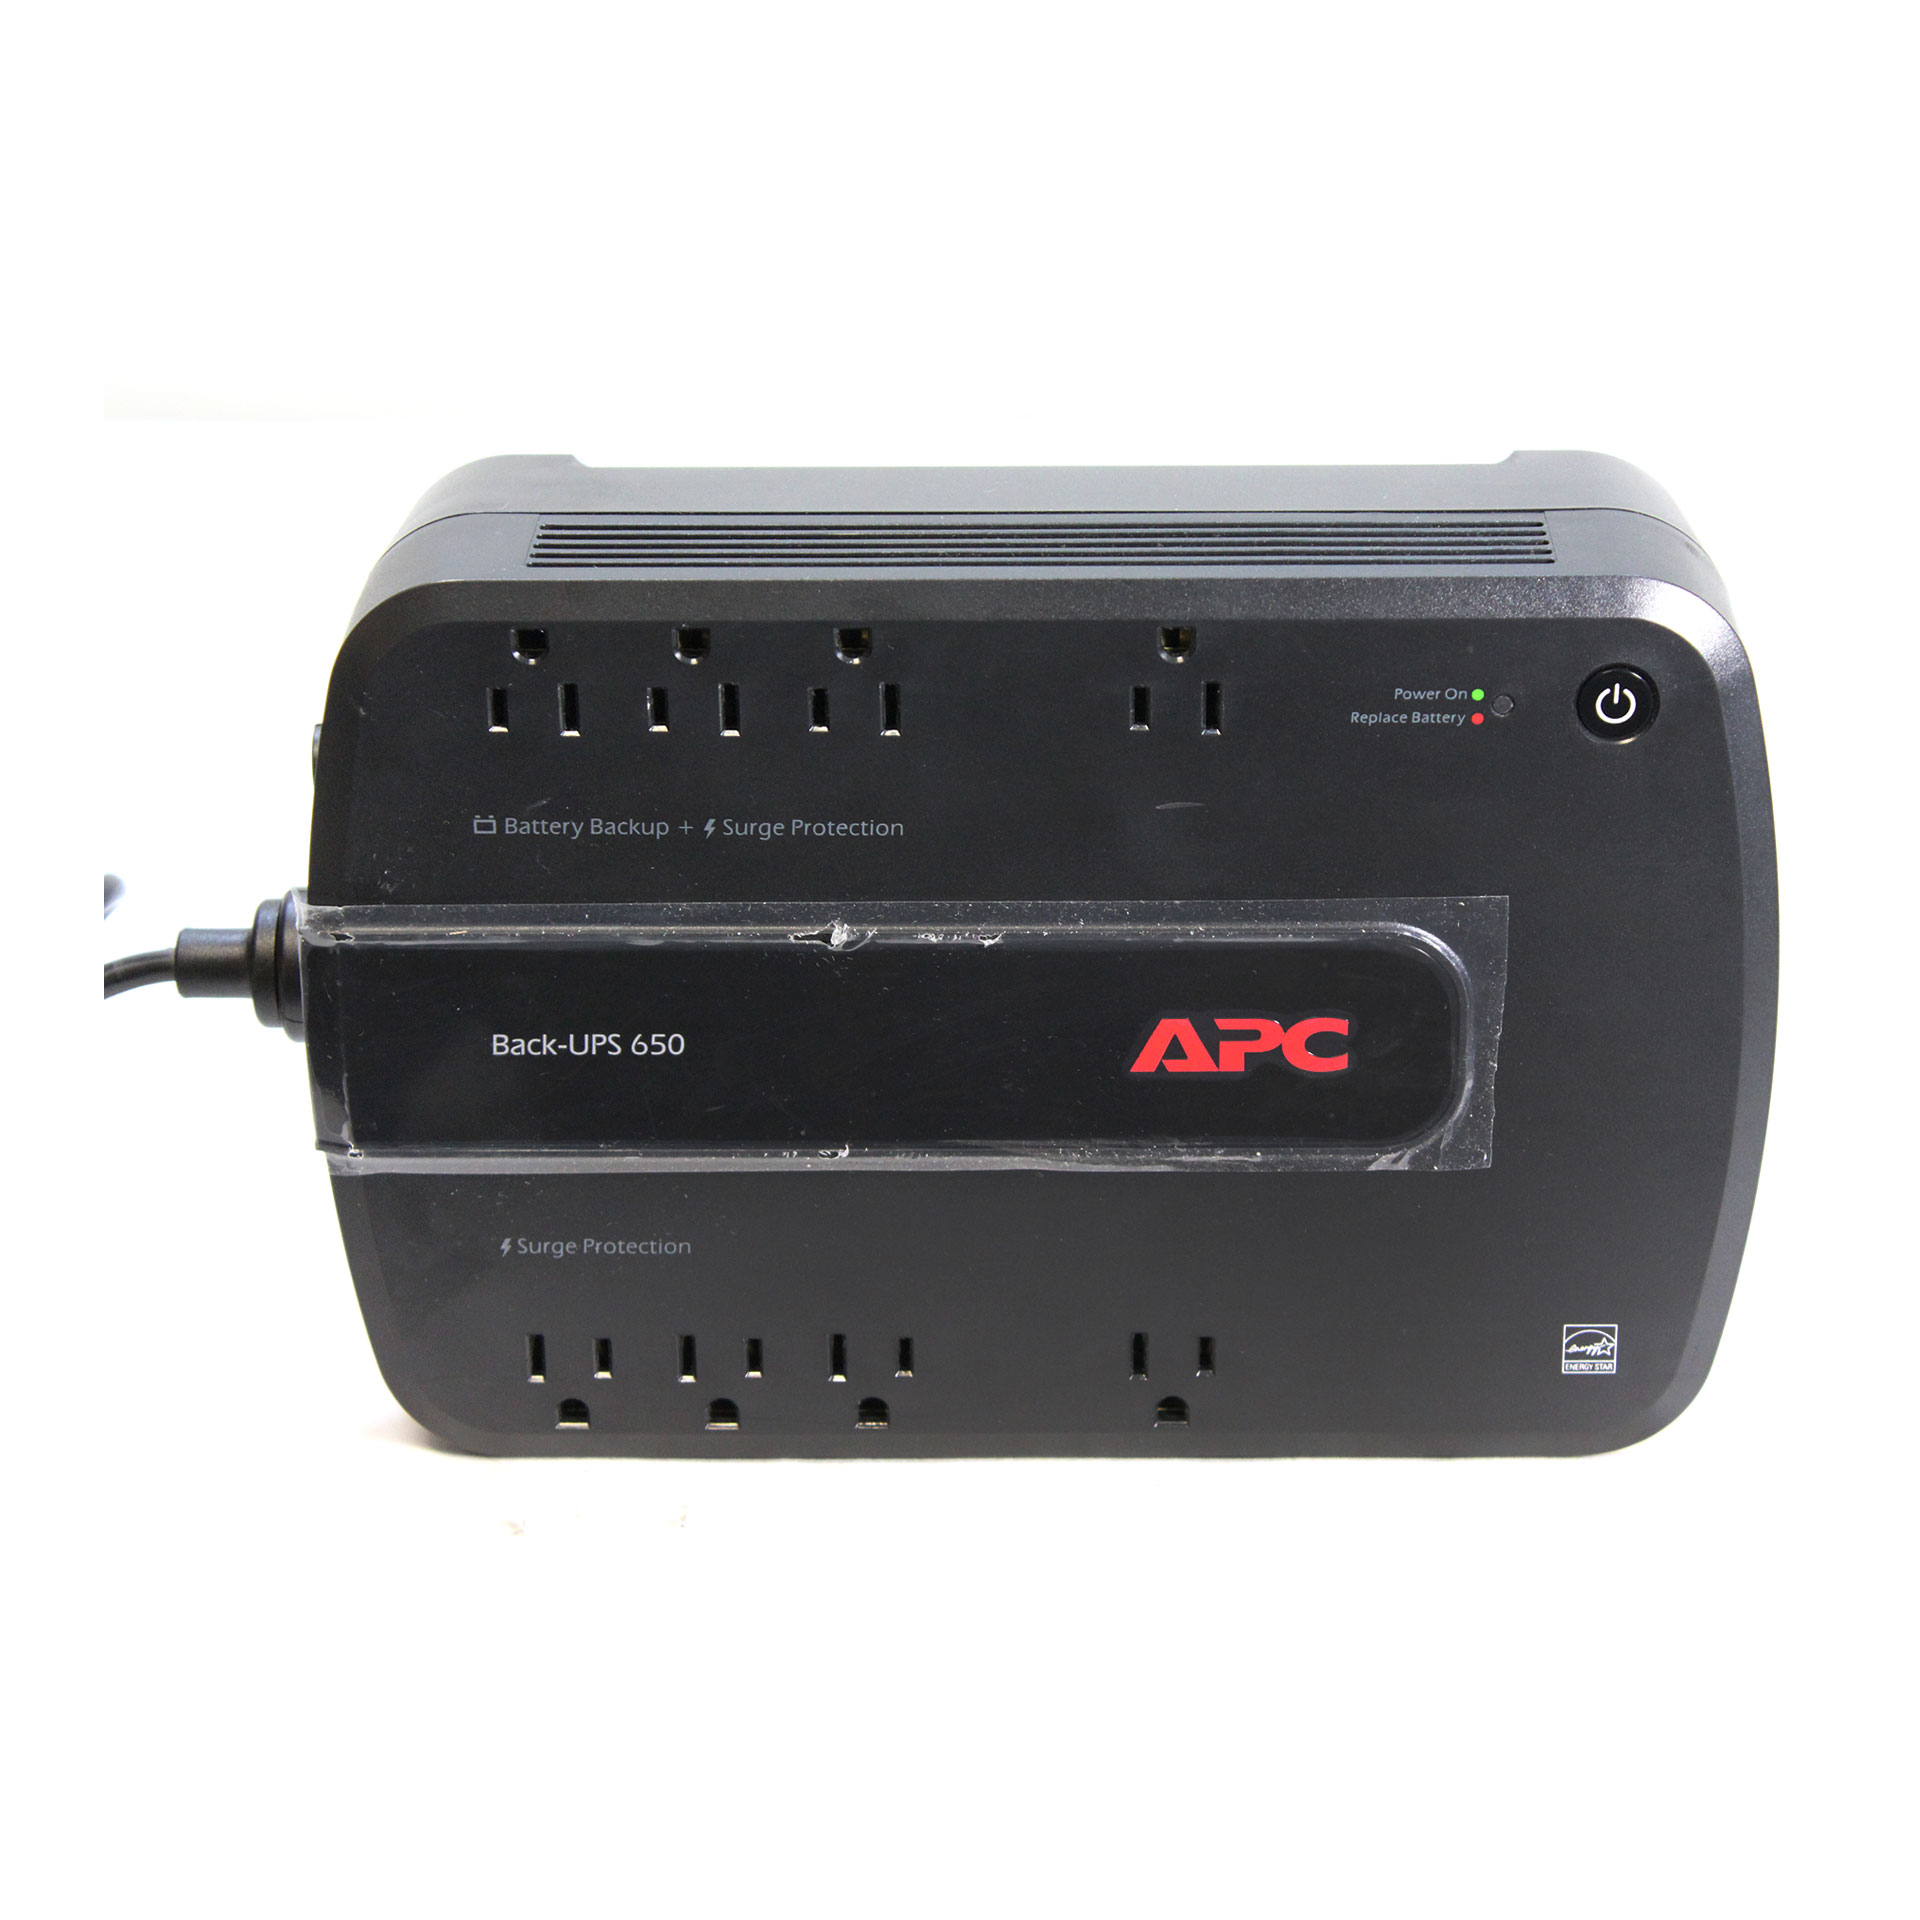 APC BE650G1 Back-UPS 650VA 8-outlet UPS#